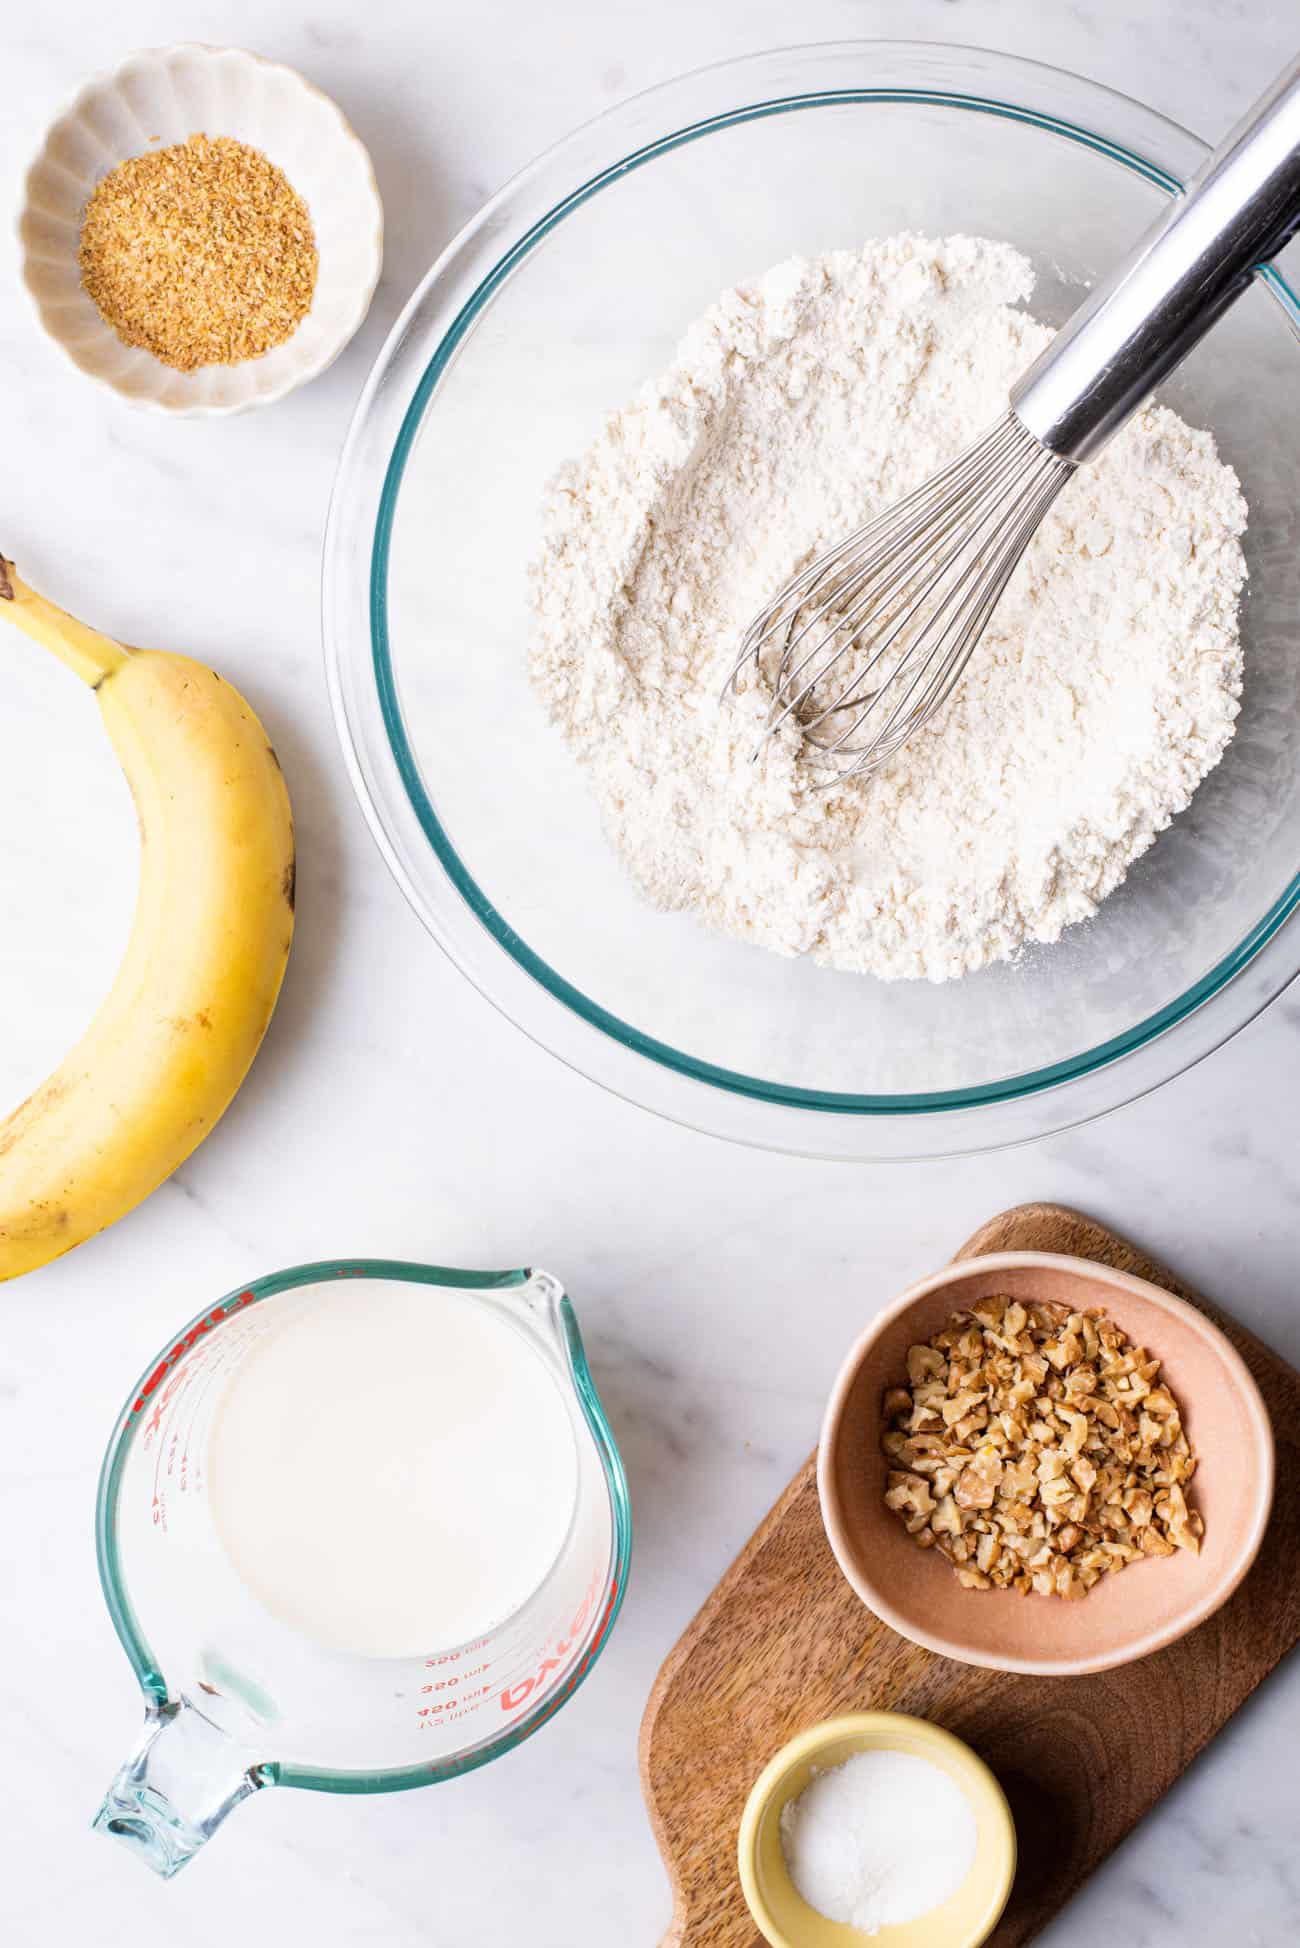 Ingredients gathered to make banana walnut pancakes on a marble counter